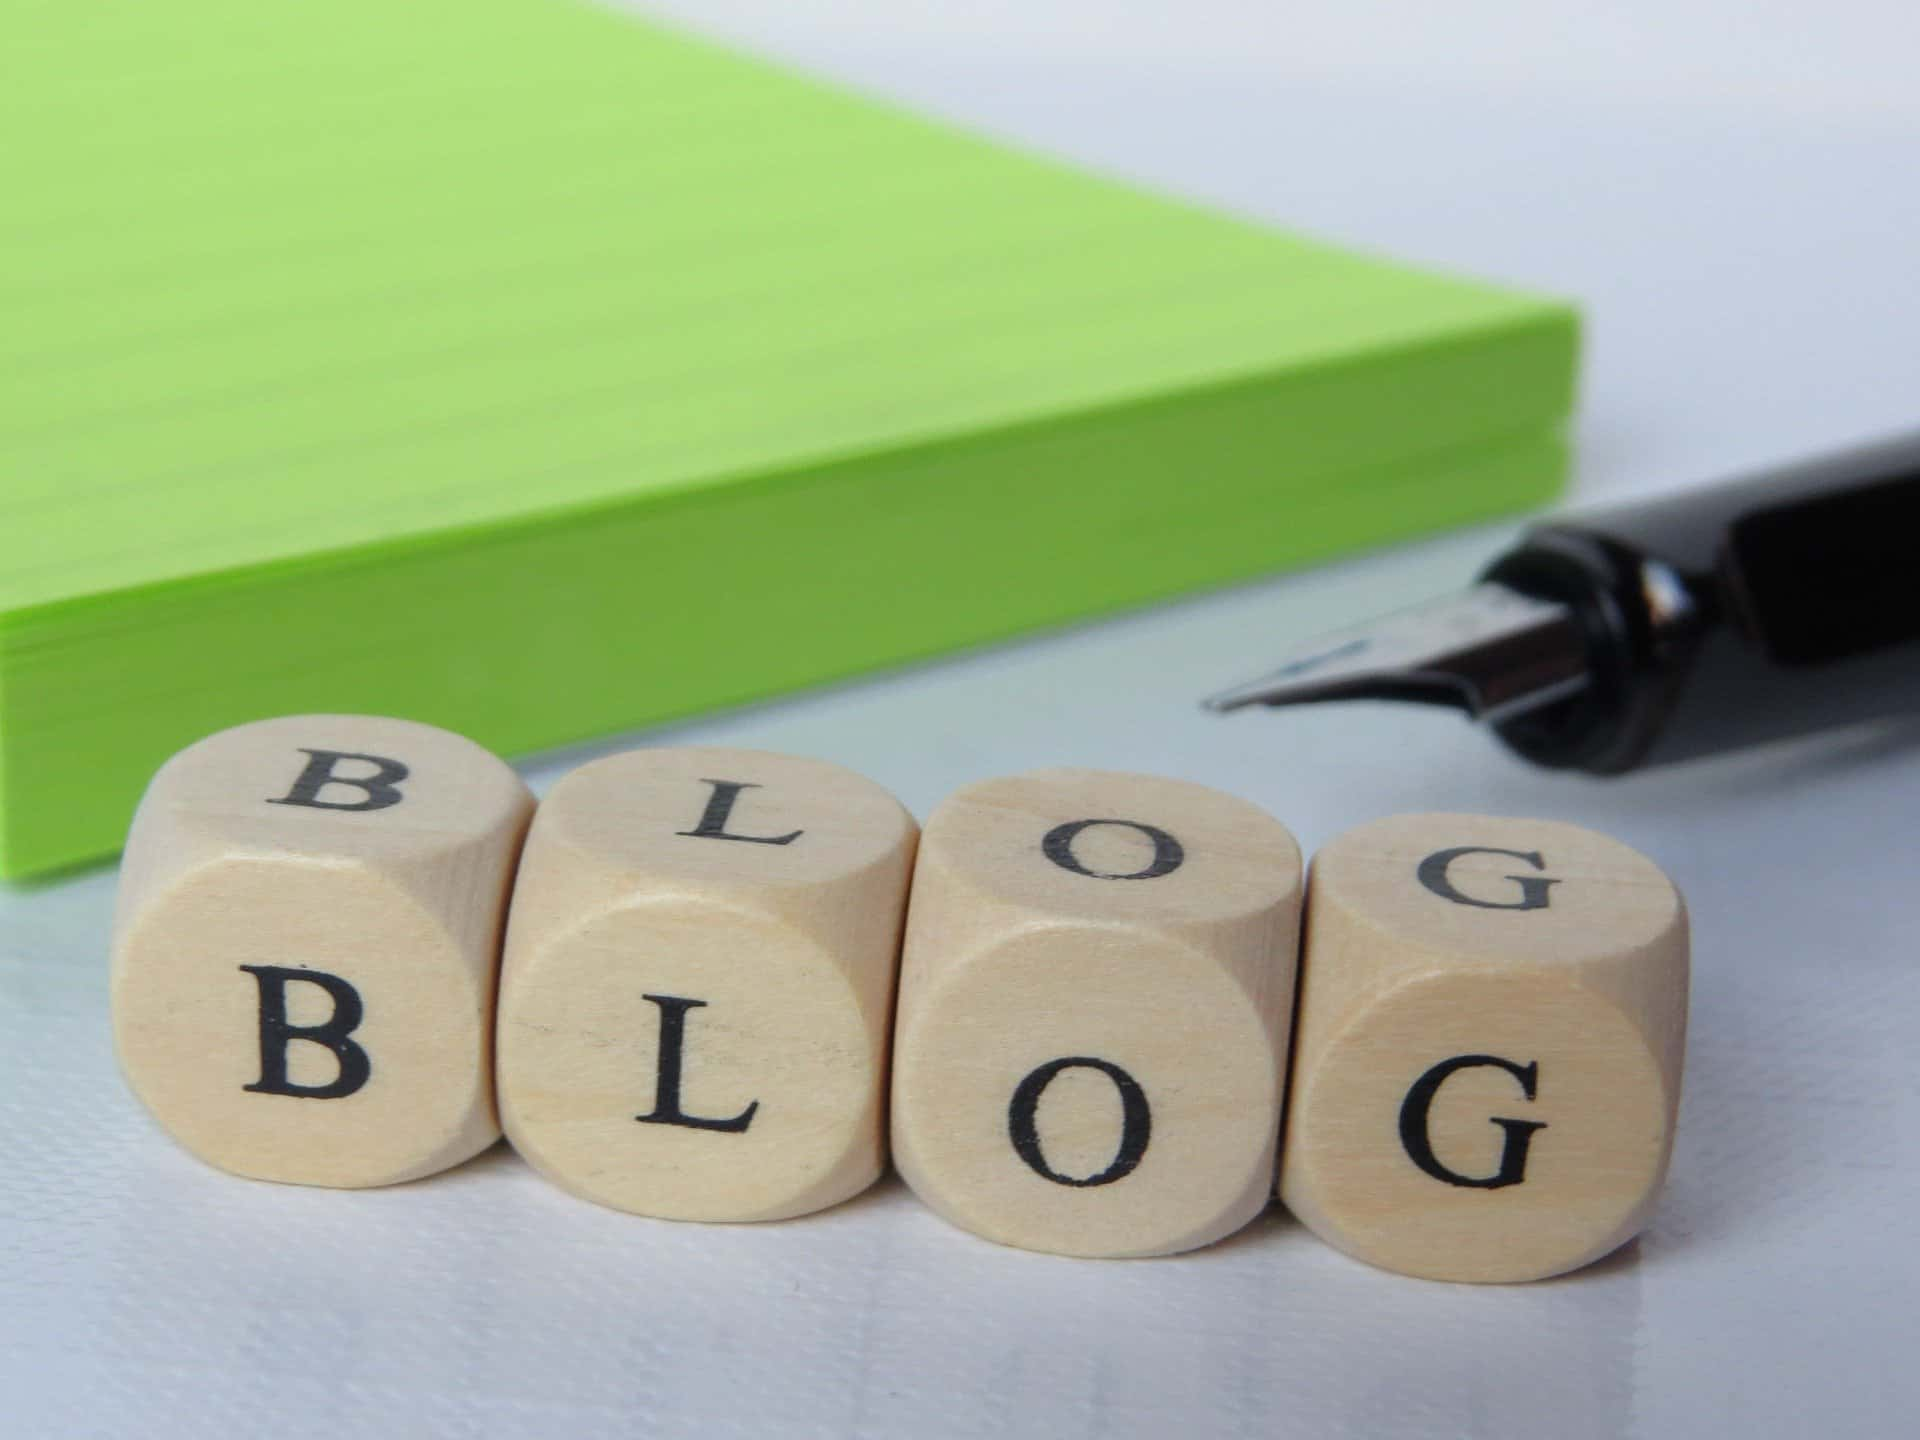 Top Blogging Trends You Should Watch Out For